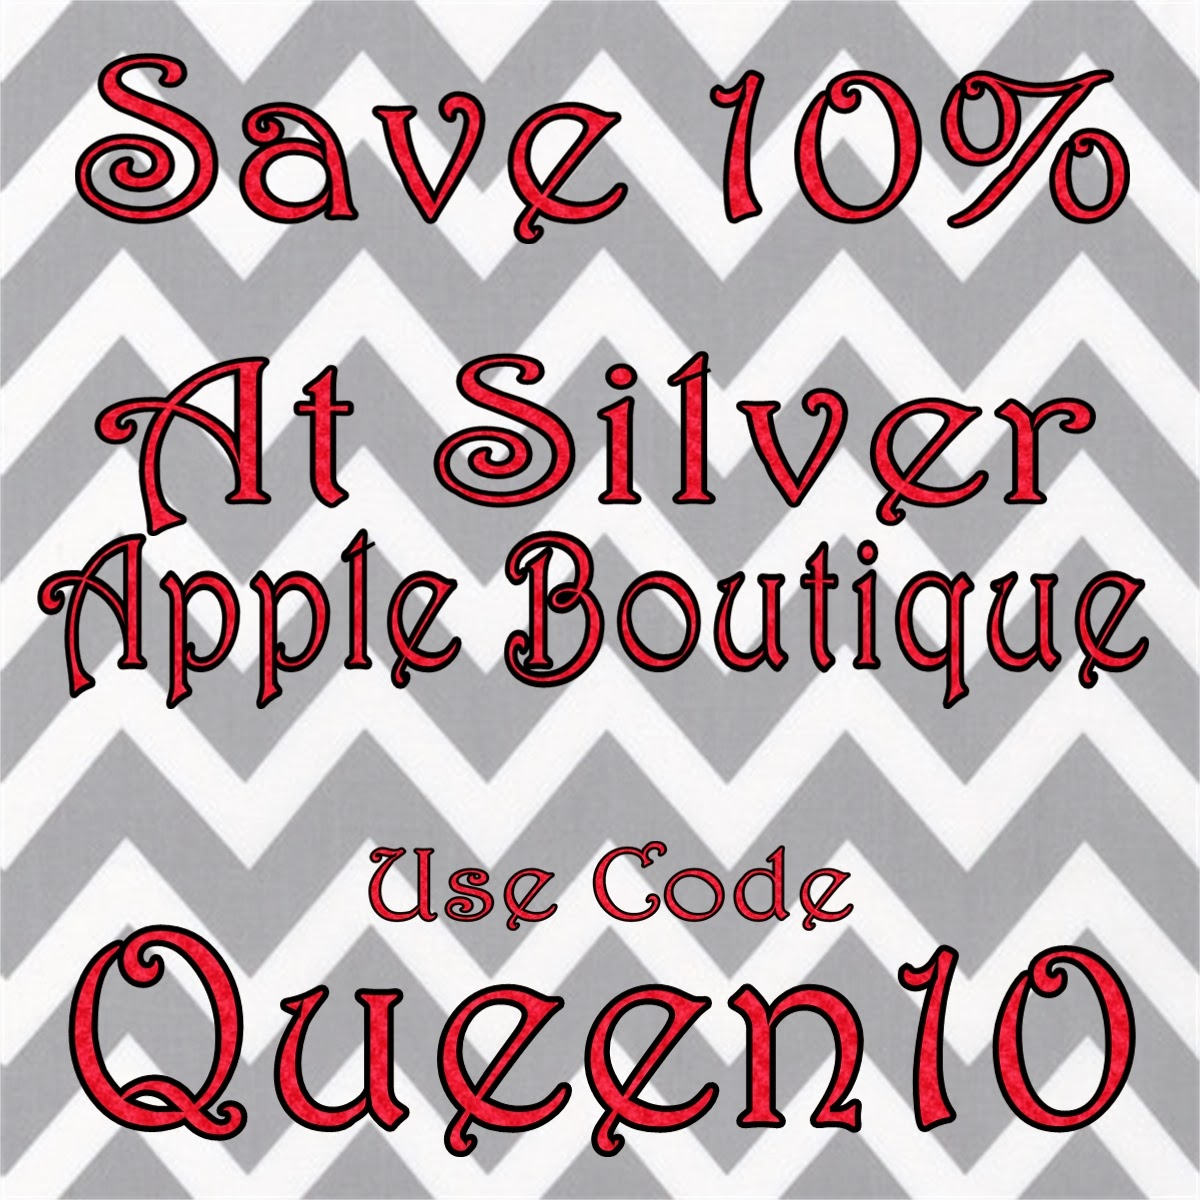 Save 10% With My Favorite Boutique